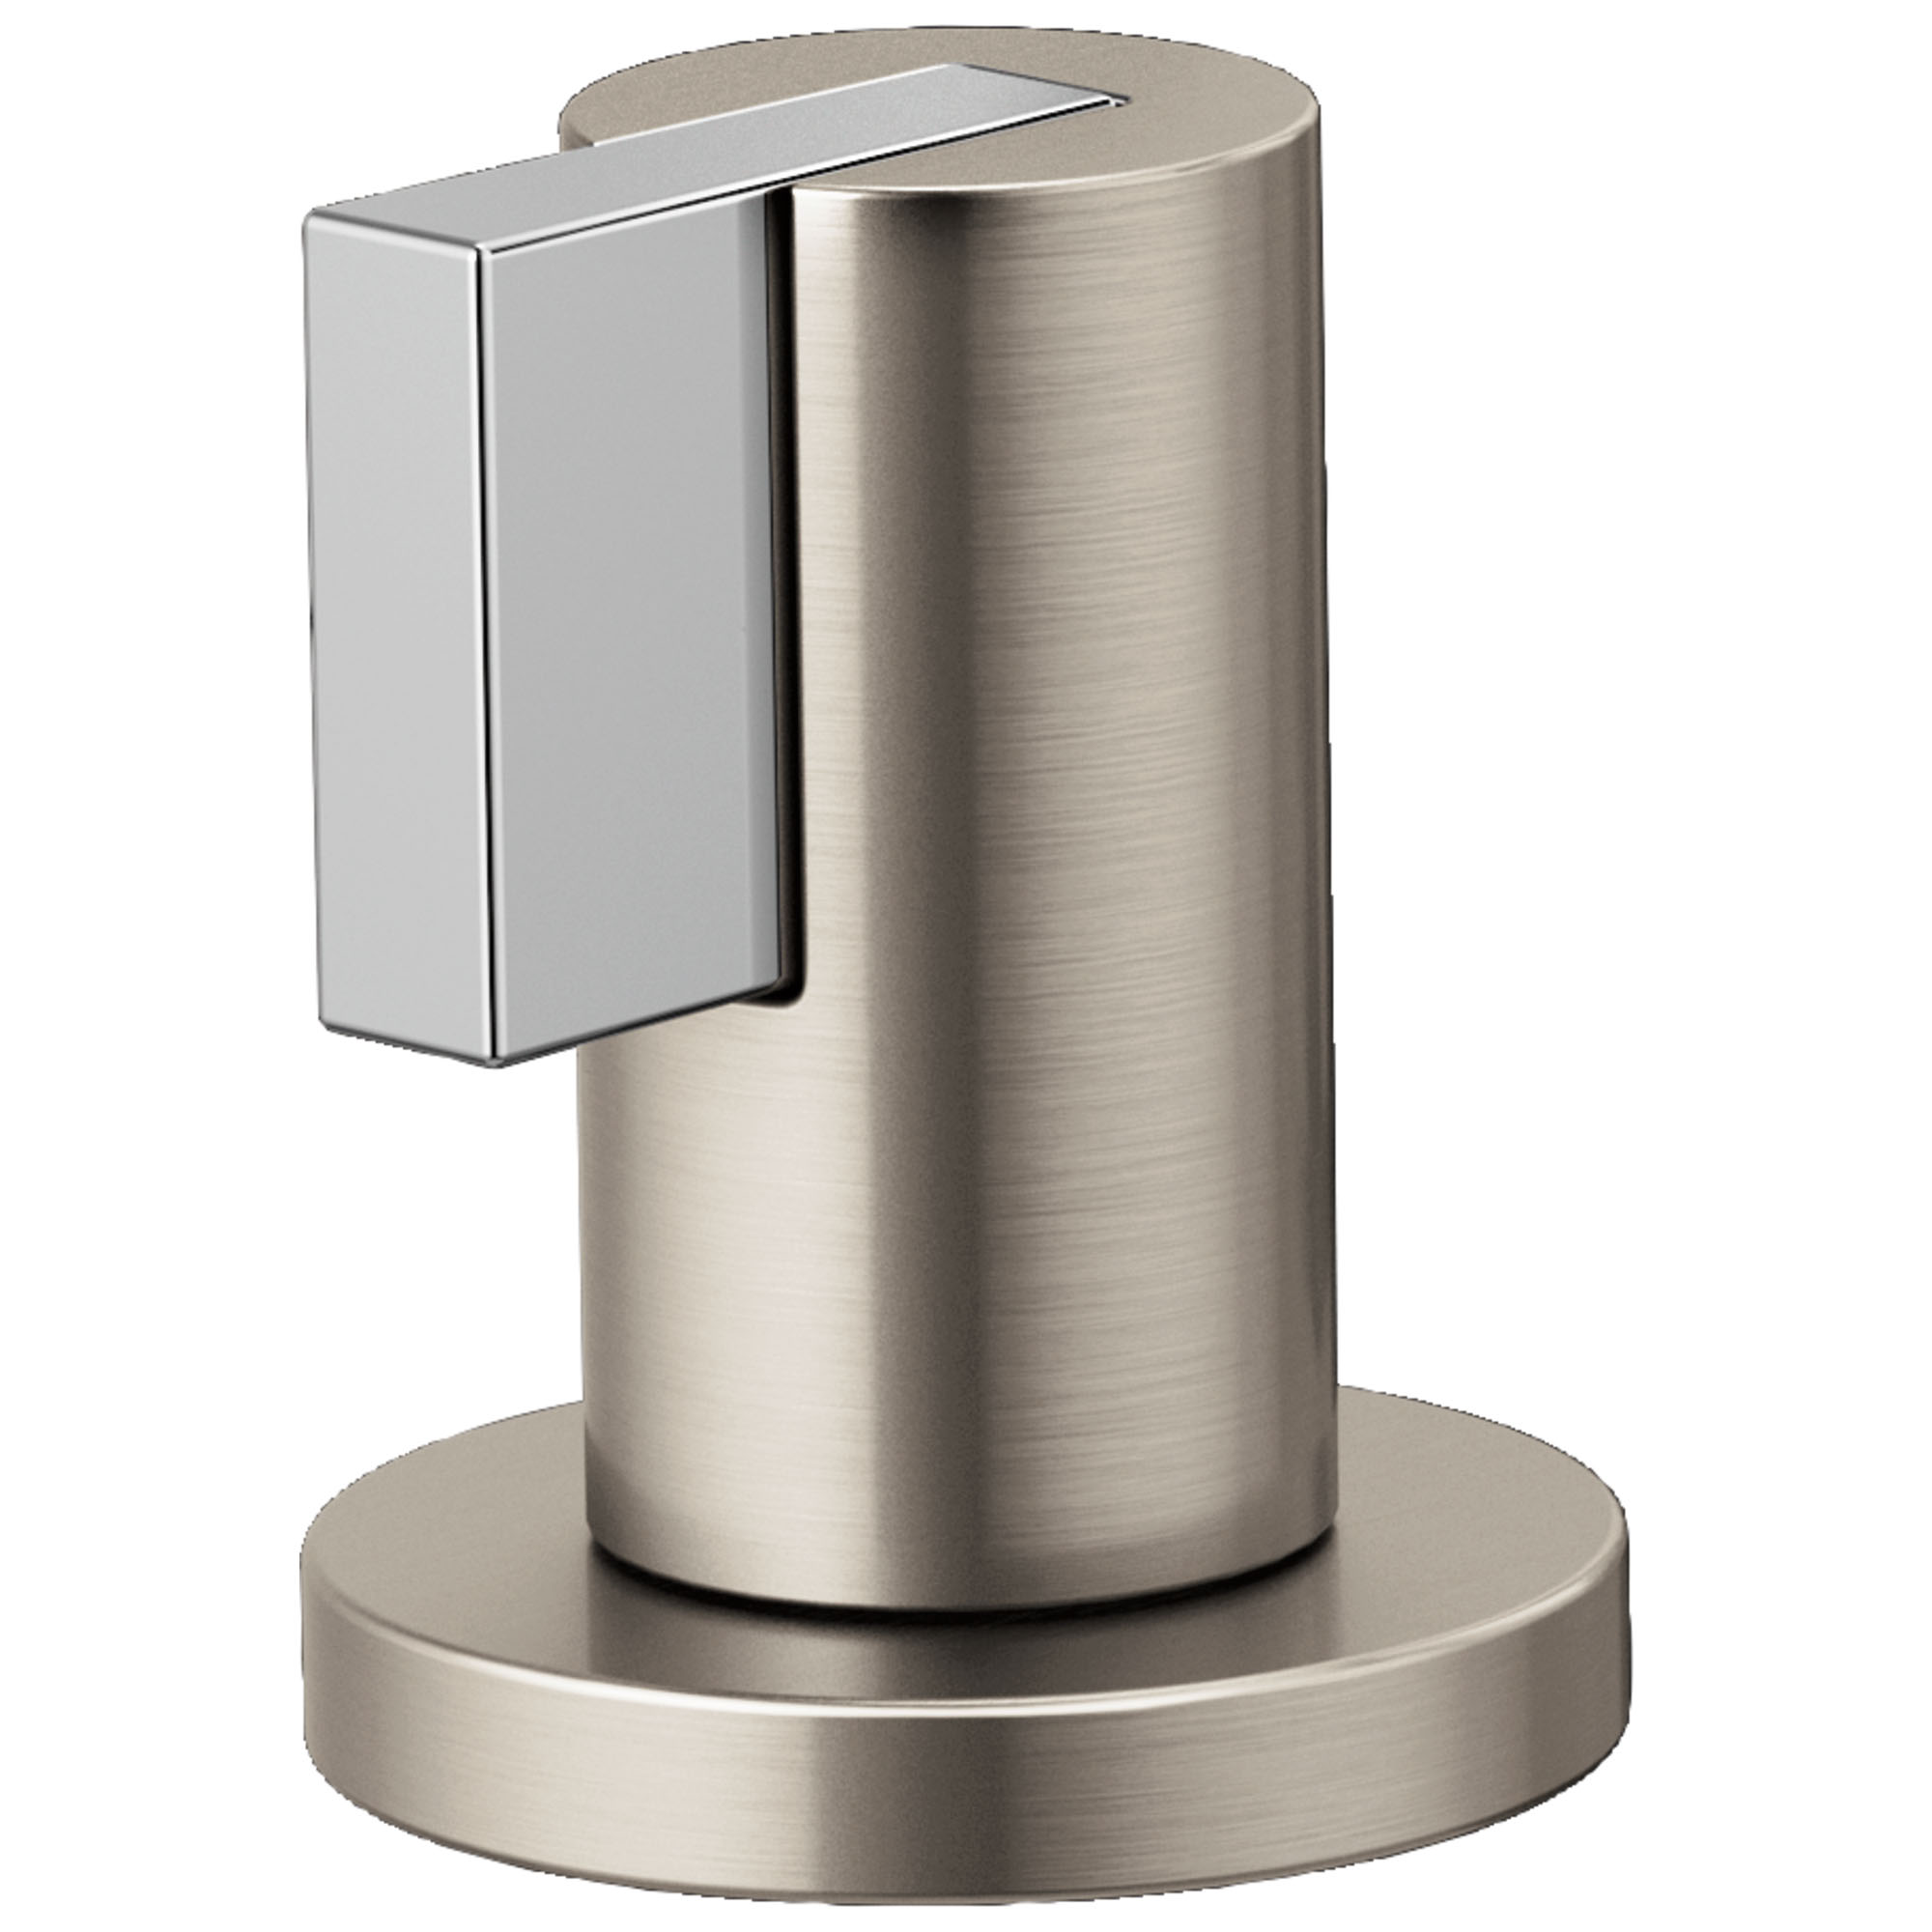 Brizo HL5332-NKPC Litze Widespread Handle Kit with Lever - Luxe Nickel/Polished Chrome